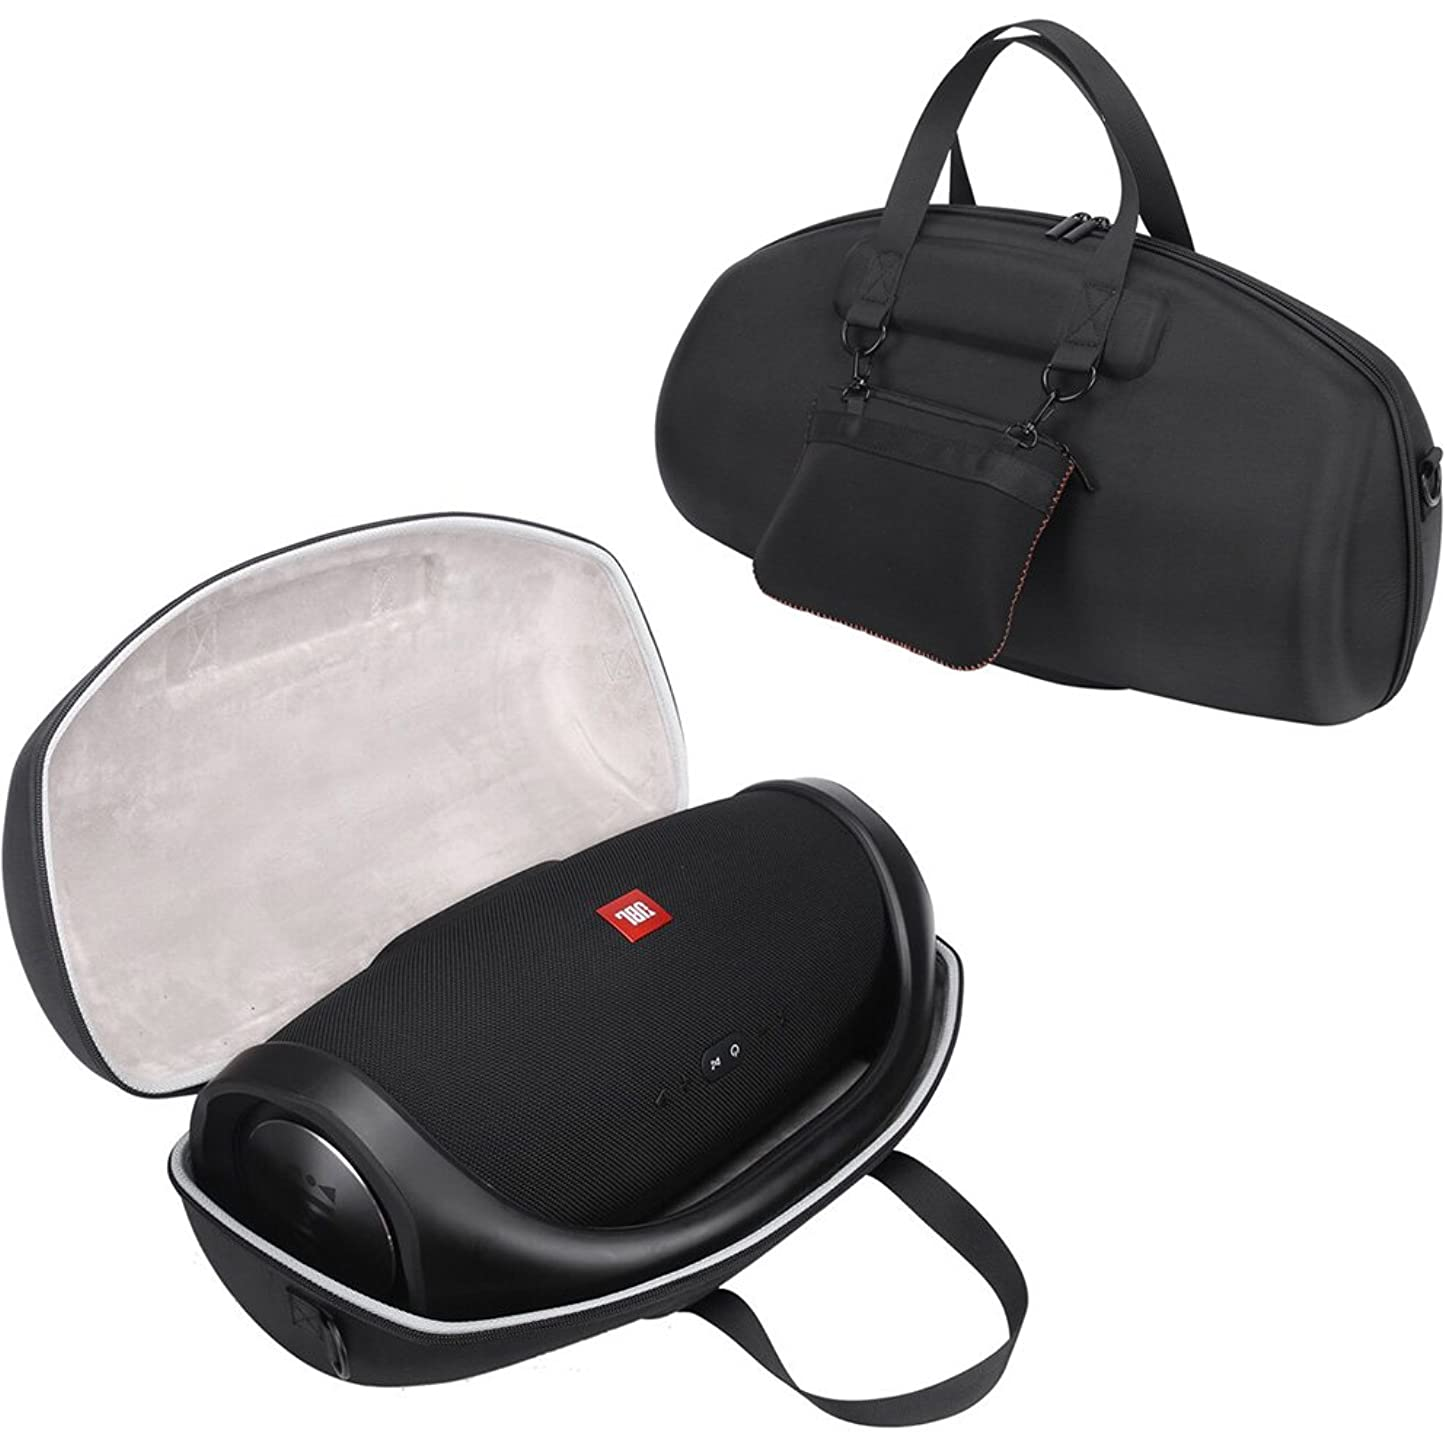 Zaracle Hard Travelling Case Storage Bag Protective Pouch Bag Carrying case for JBL Boombox Portable Bluetooth Waterproof Speaker